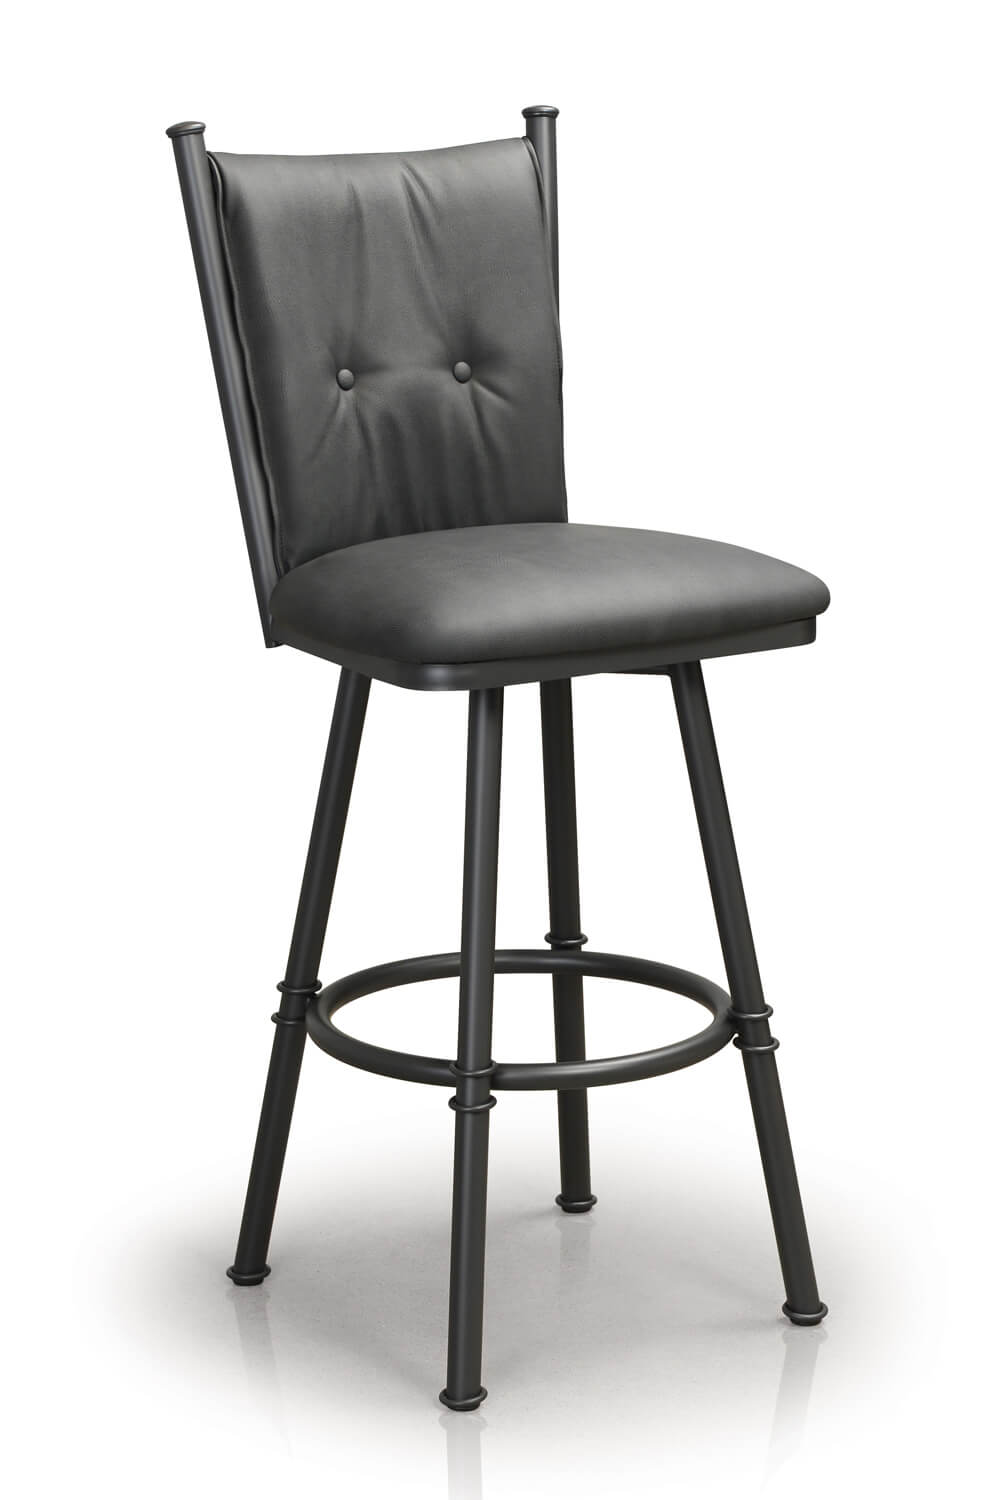 Buy Trica S Arthur Swivel Counter Stool W Button Tufted